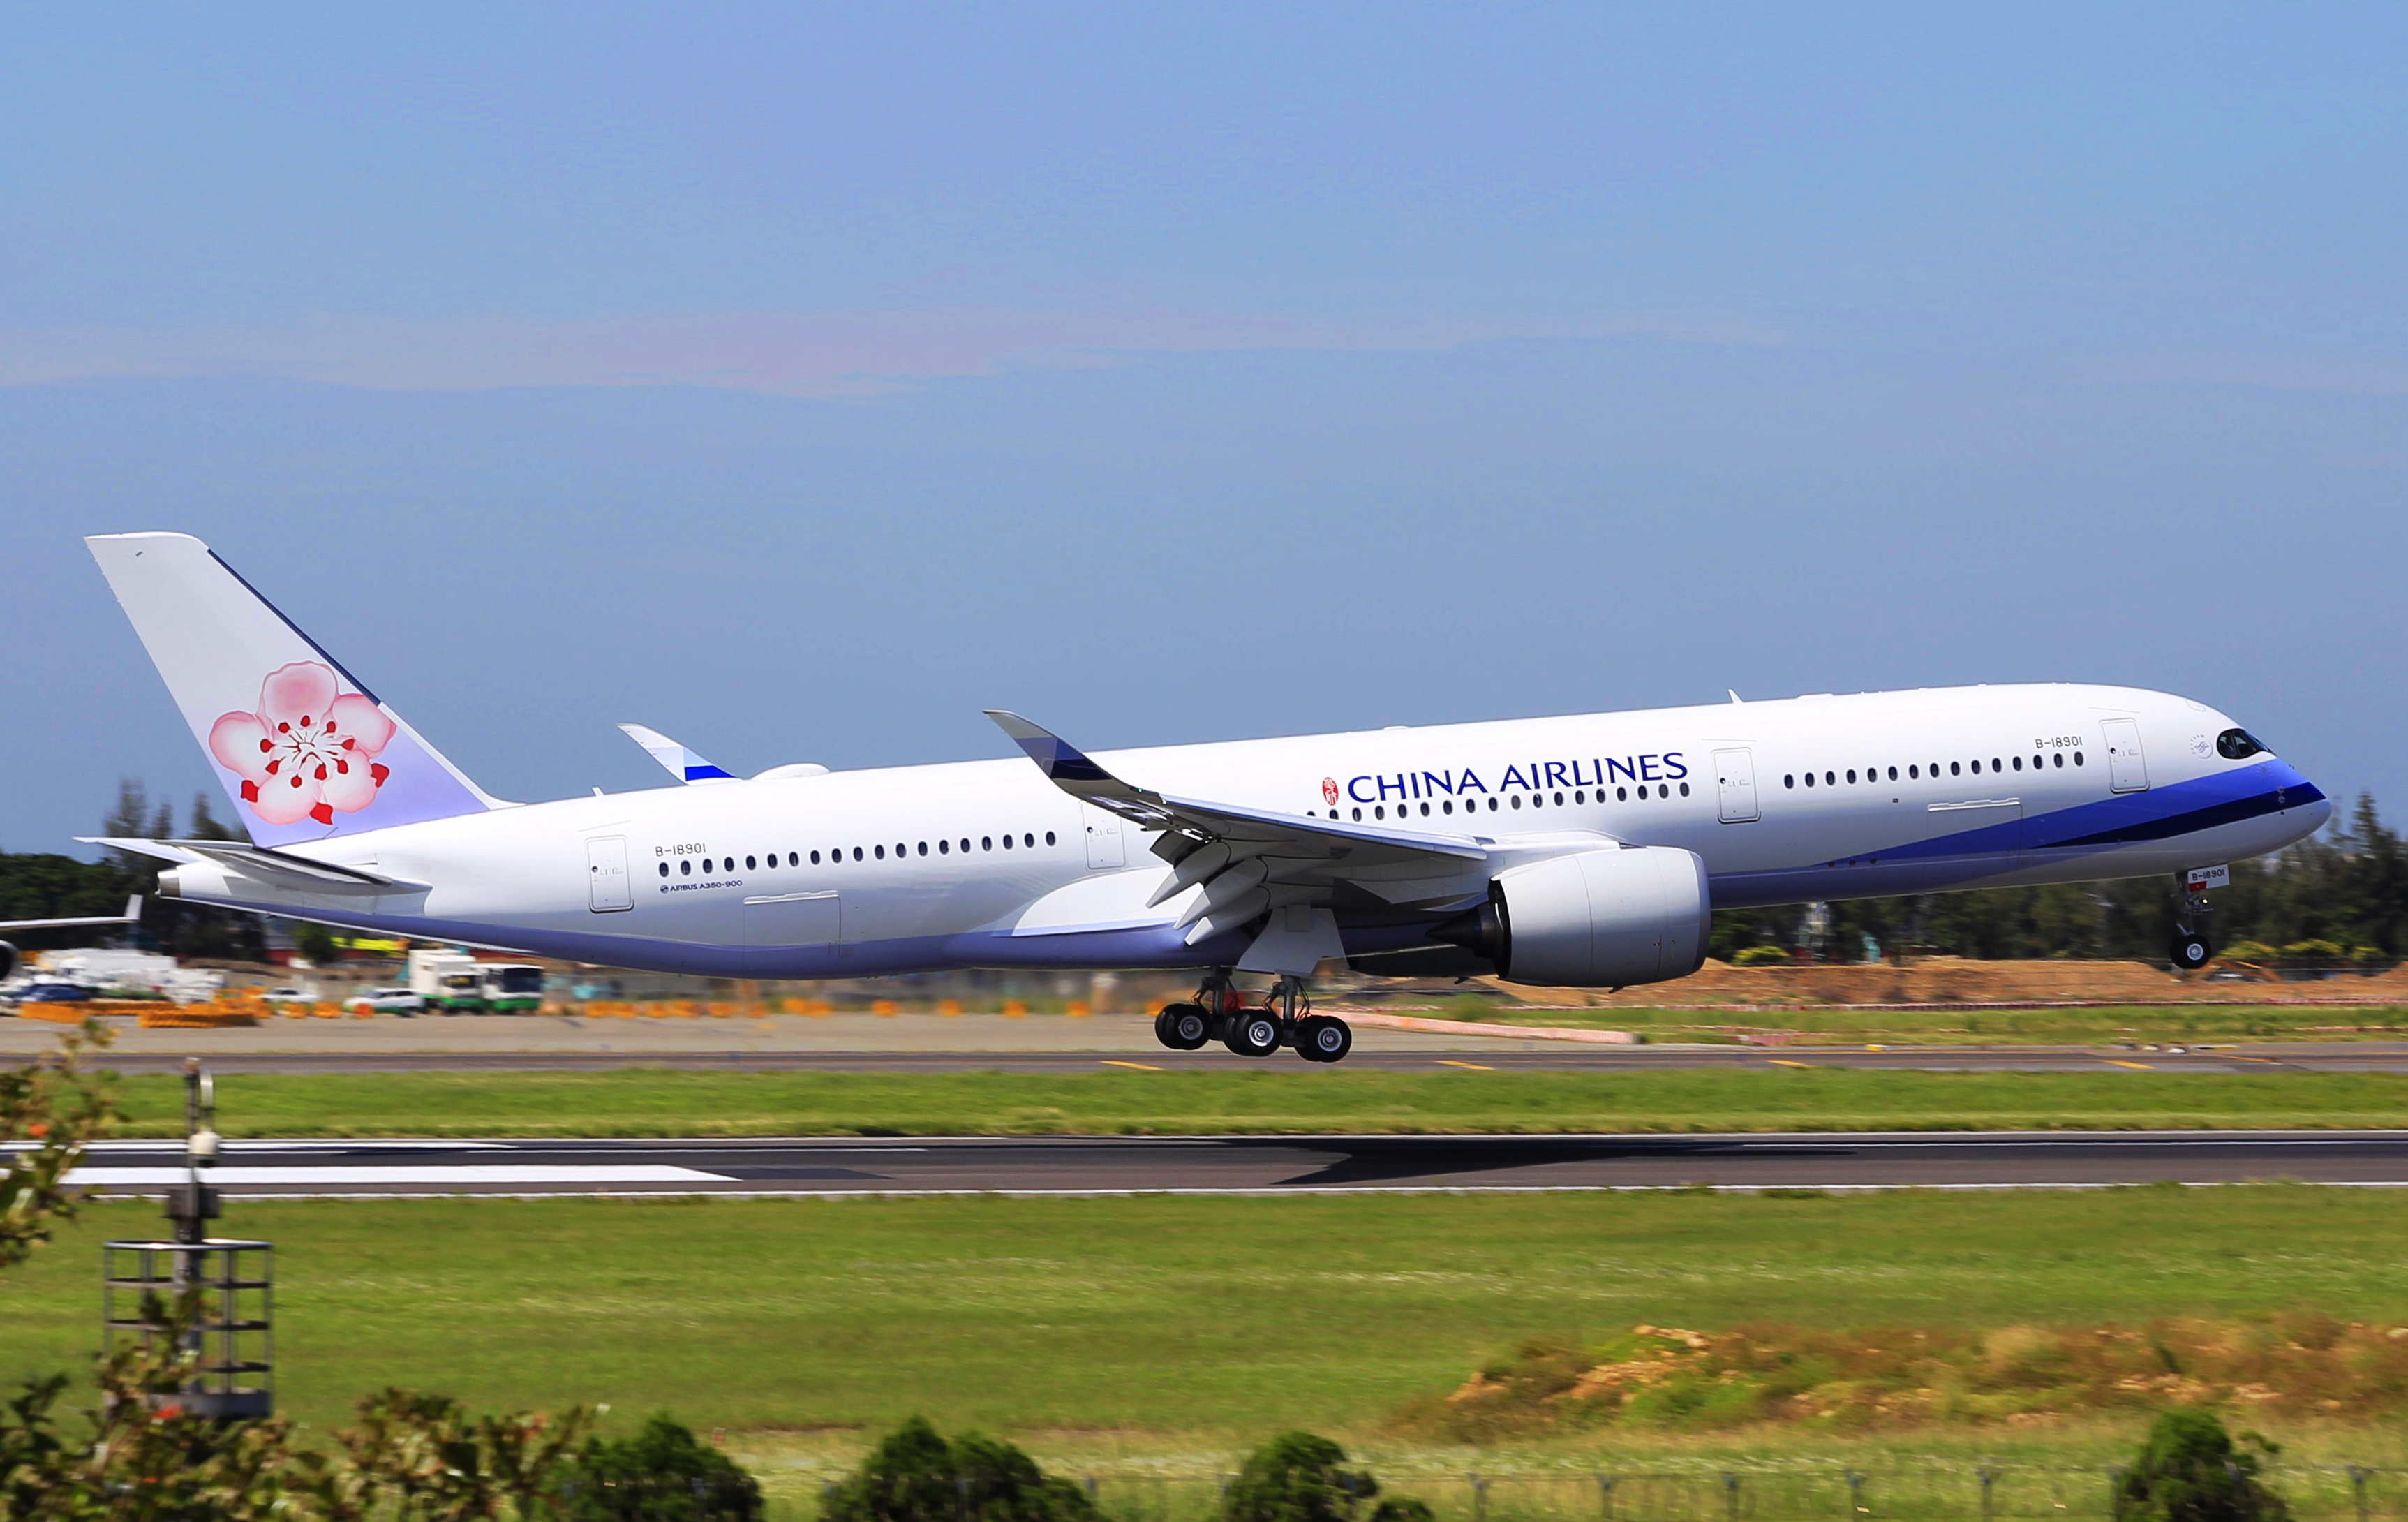 China_Airlines_A350-941_B-18901_Landing_in_TPE_2016-10-01_%28cropped%29.jpg